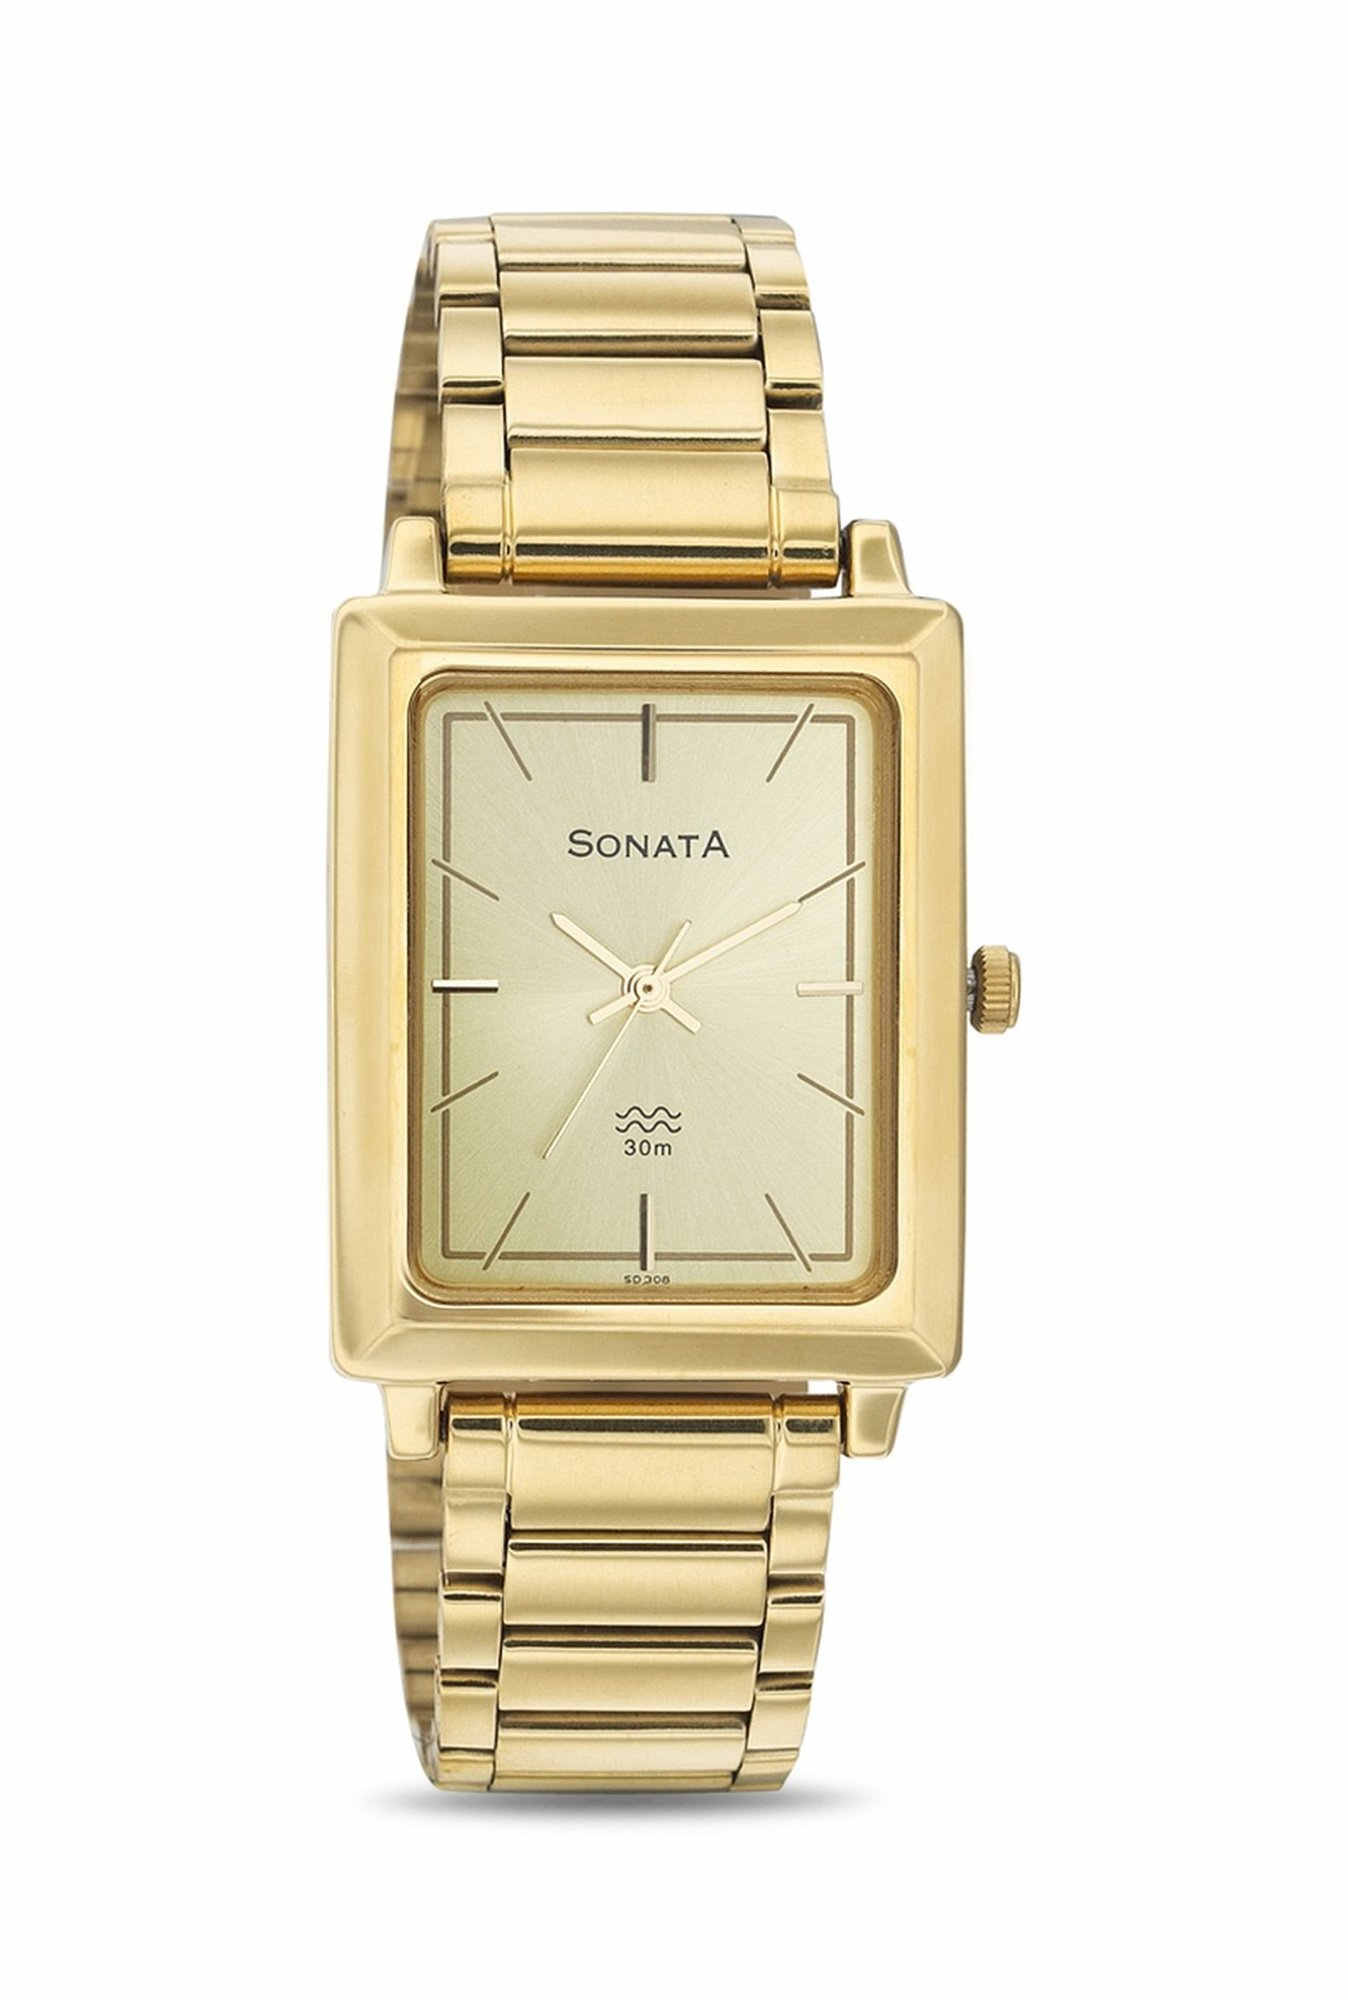 Sonata 7078YM02 Analog Gold Dial Men's Watch (7078YM02)